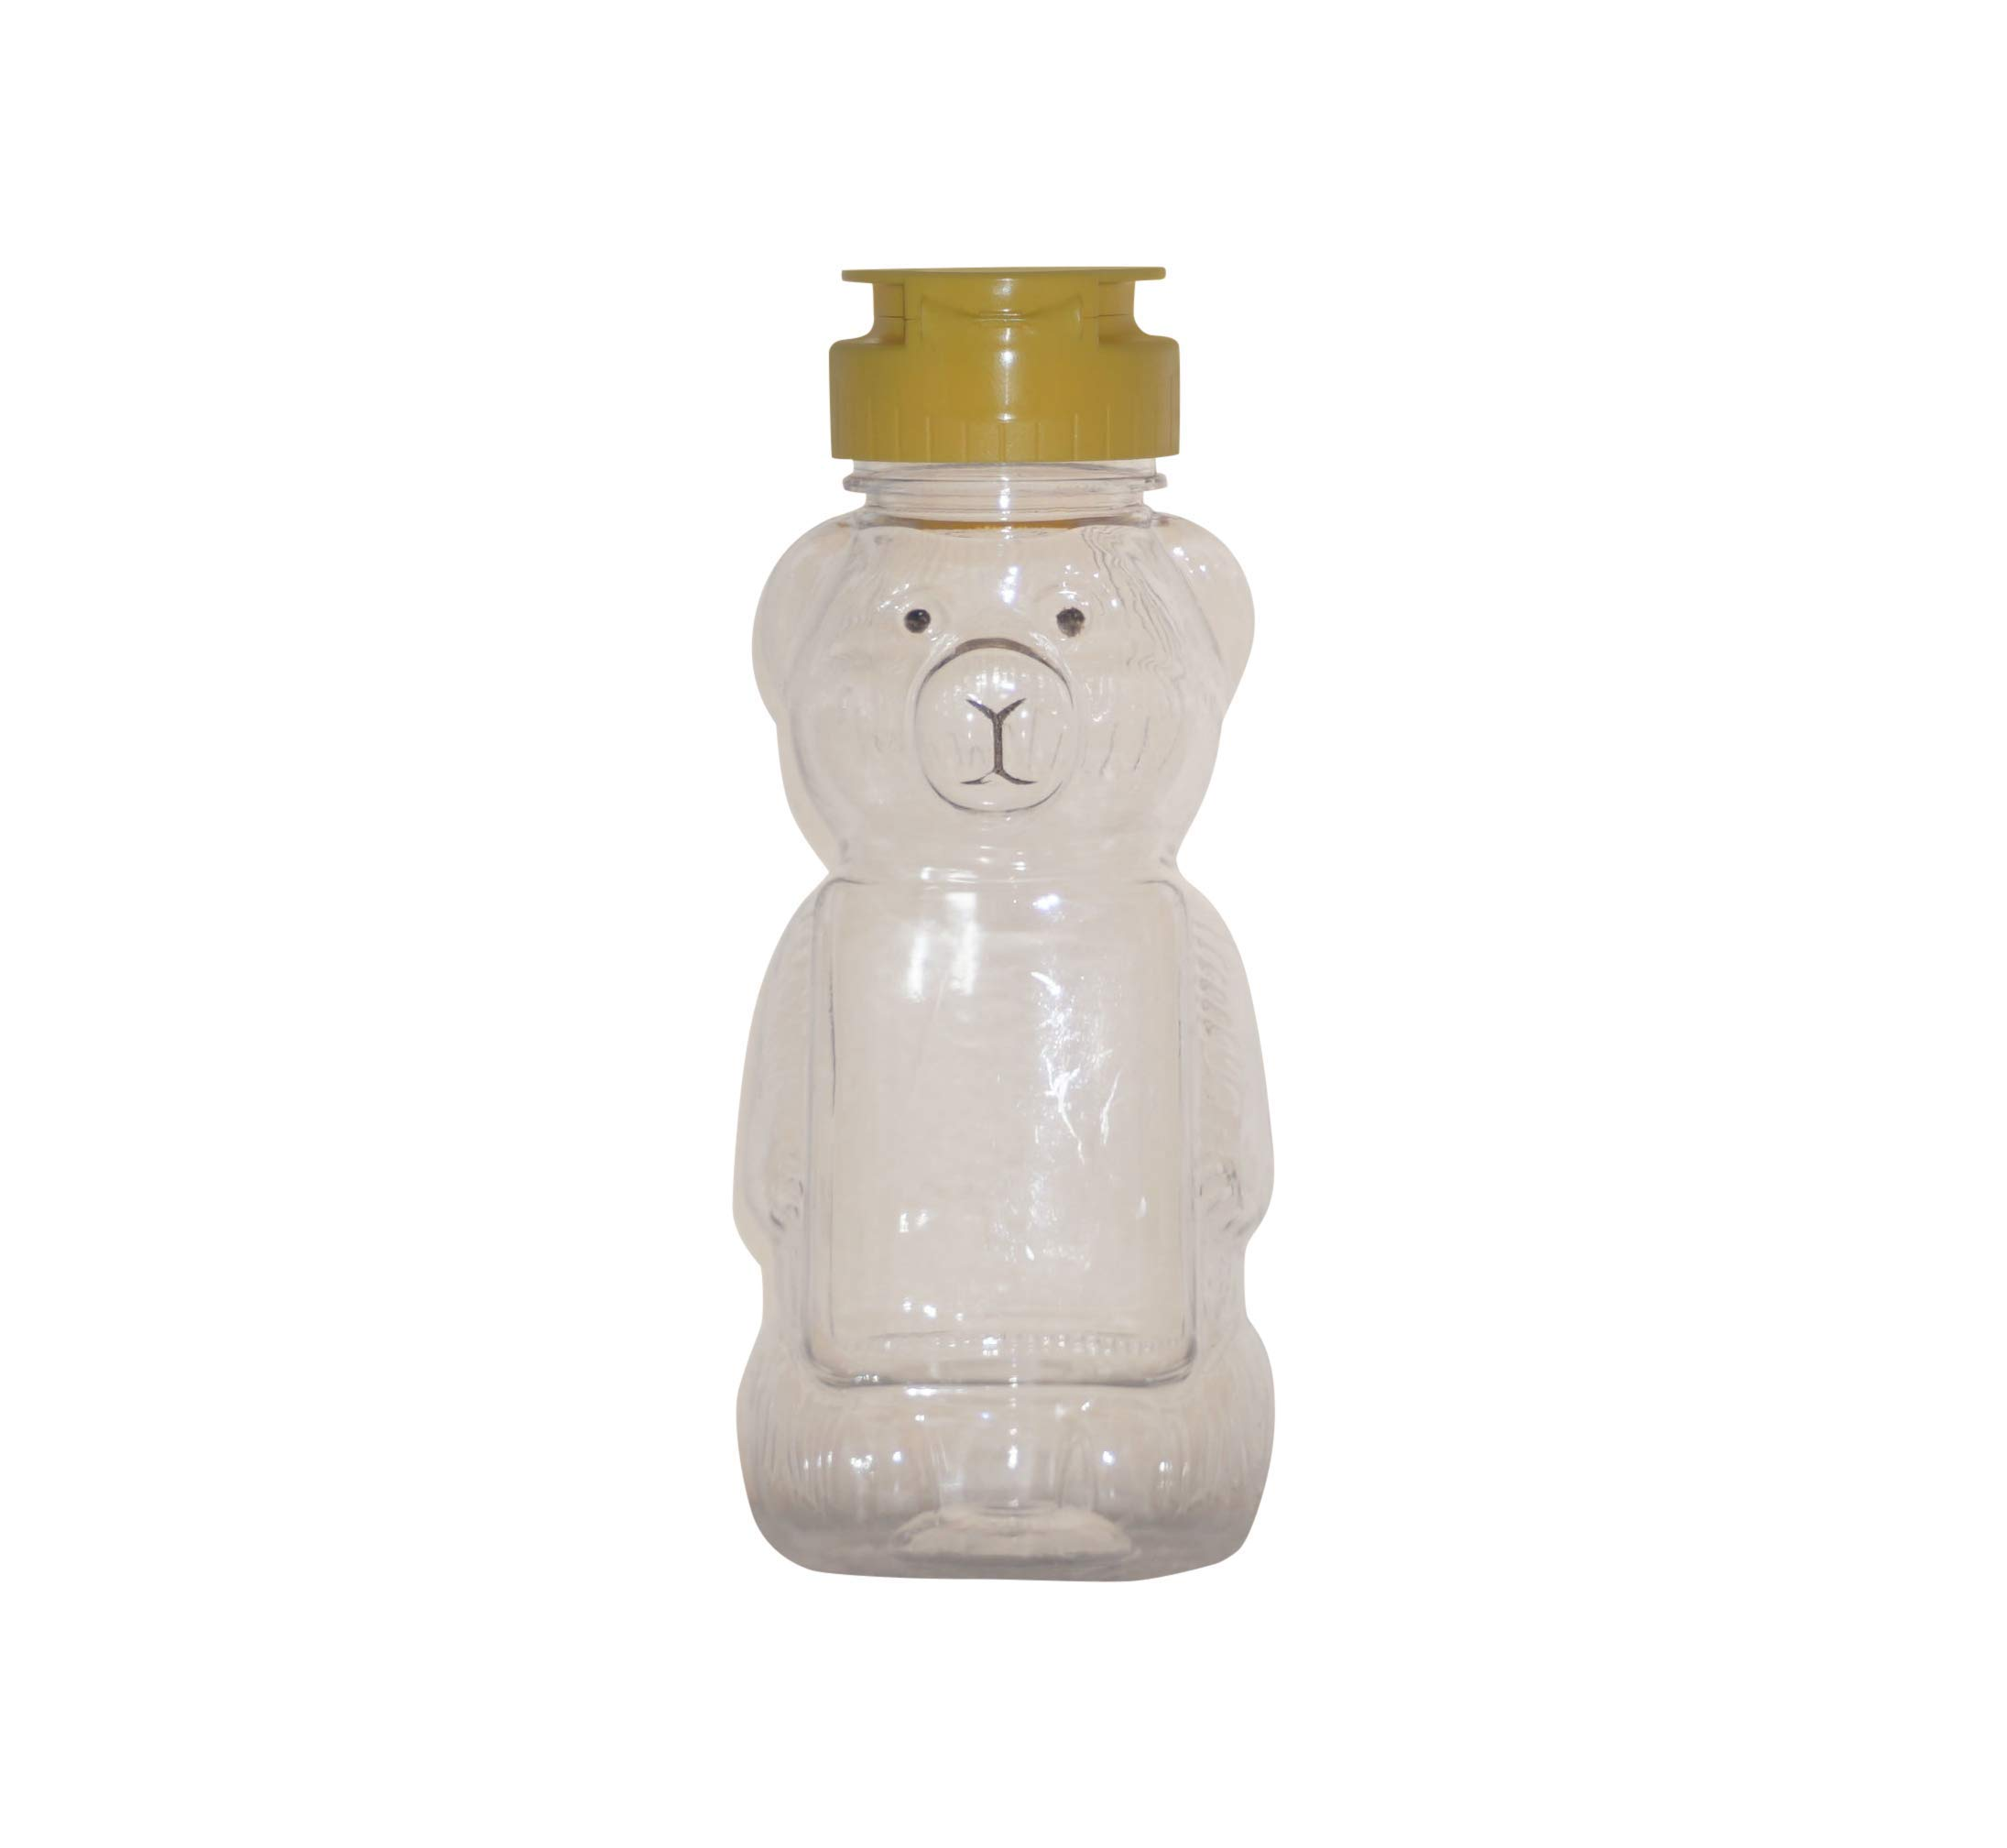 WM (Set of 24) 8 fl oz (12 oz of honey) Refillable, Reusable, Empty Clear PET Honey Bear Plastic Bottles w/ Yellow Flip Top Lined Caps. Used for Honey, Juice, Arts & Crafts and More